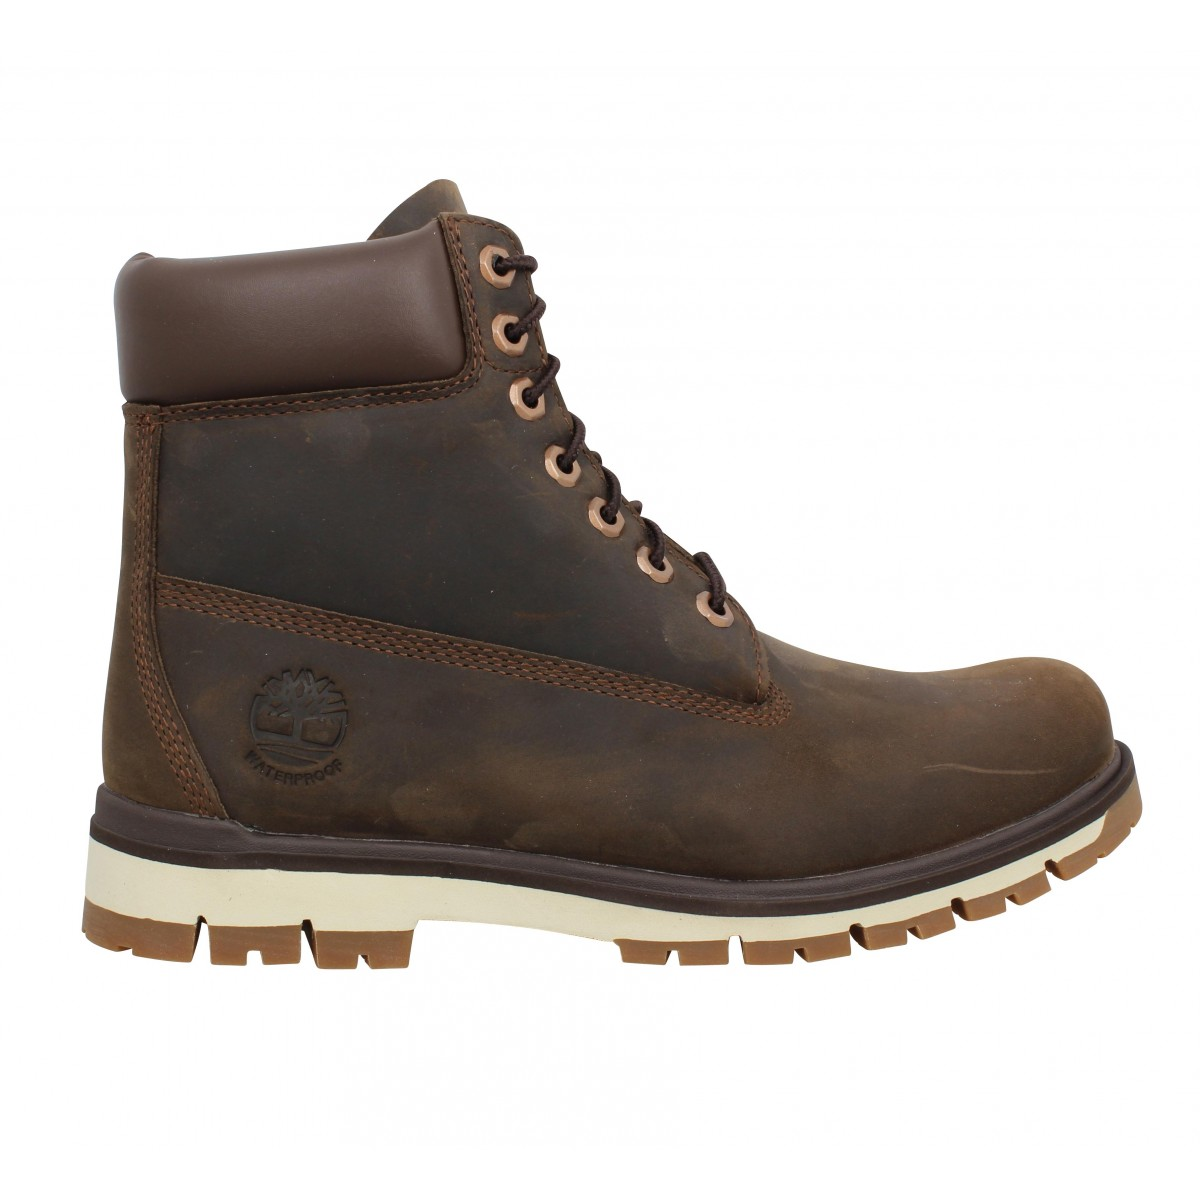 Notre guide de taille chaussures Timberland France